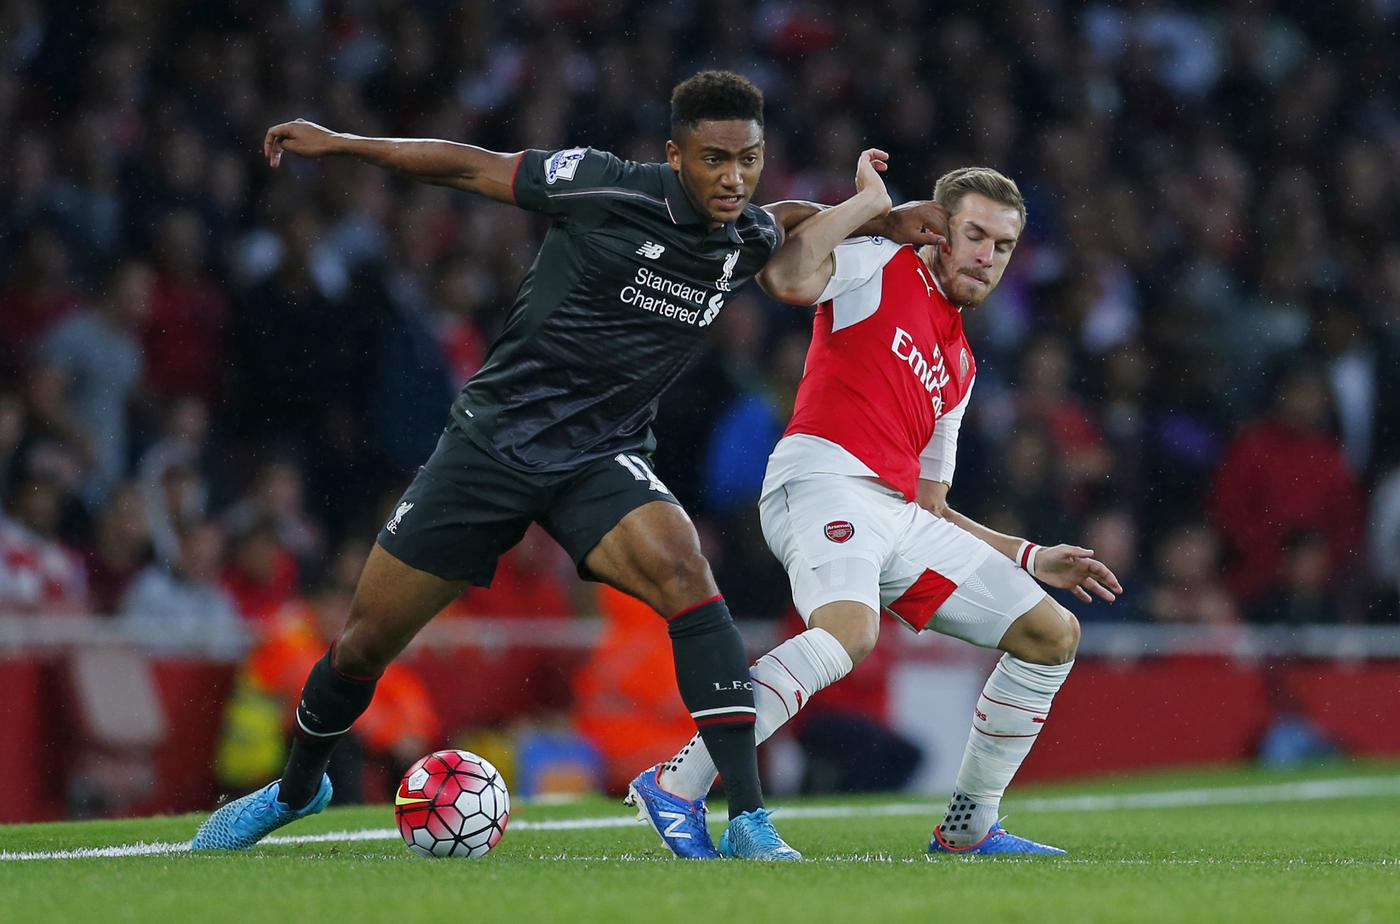 What have we thought of Liverpool's new defender Joe Gomez?